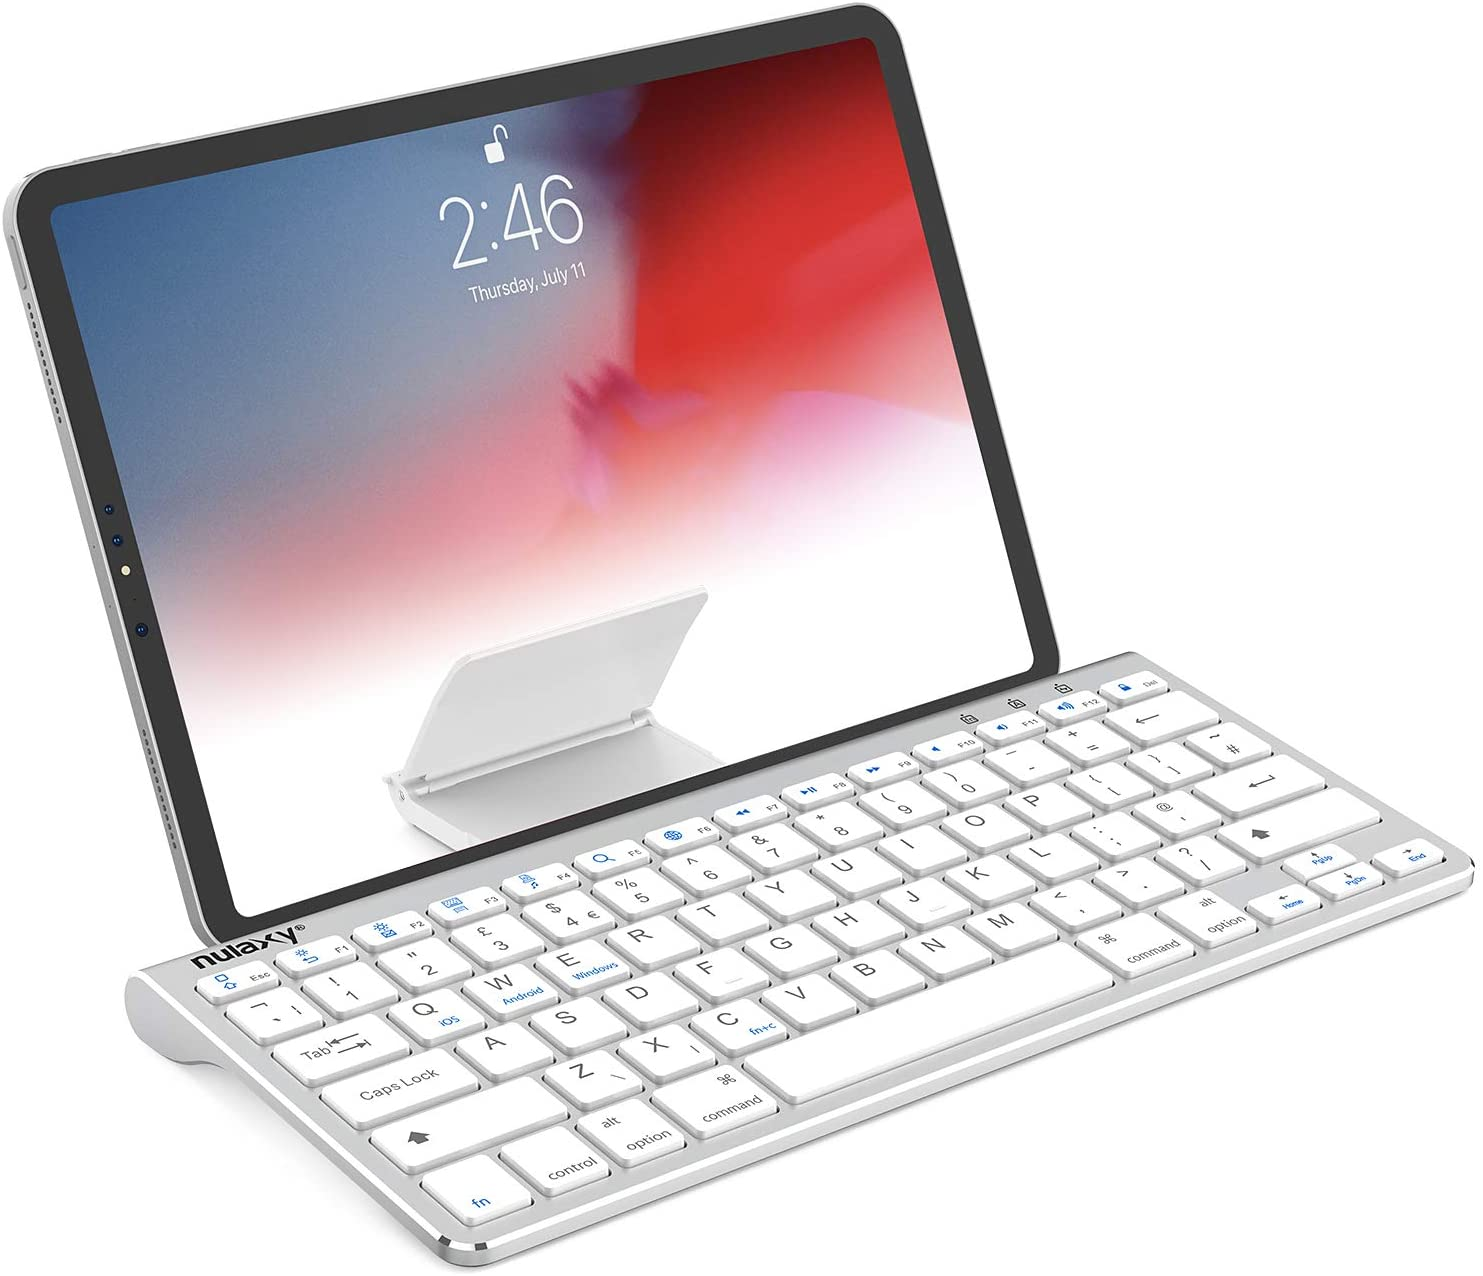 Amazon Com Nulaxy Km13 Wireless Bluetooth Keyboard With Sliding Stand Compatible With Apple Ipad Iphone Samsung Android Windows Tablets Phones Keyboard Silver Computers Accessories